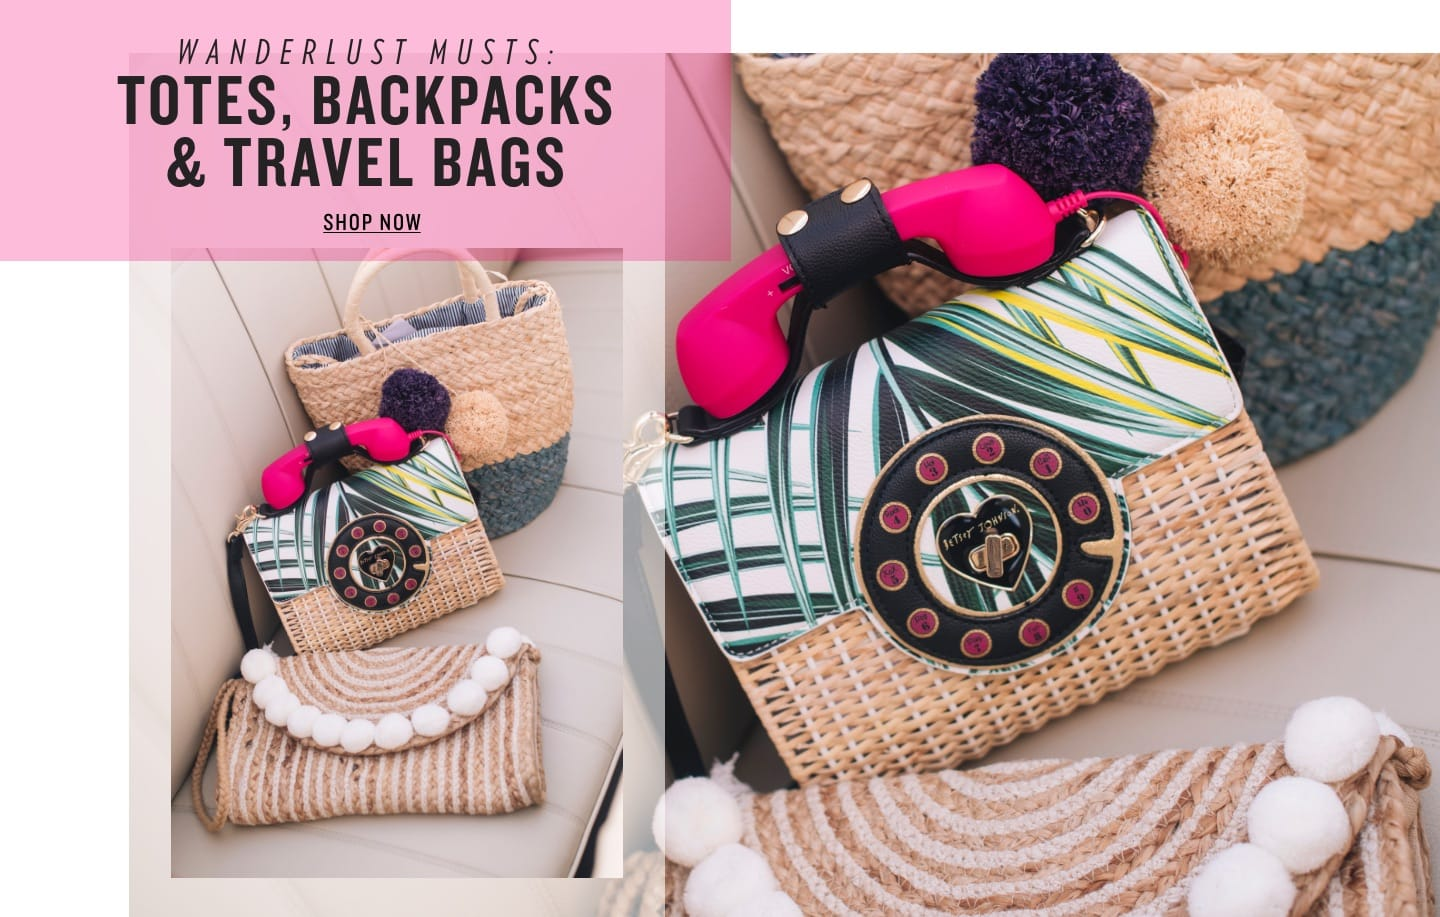 Totes, Backpacks & Travel Bags